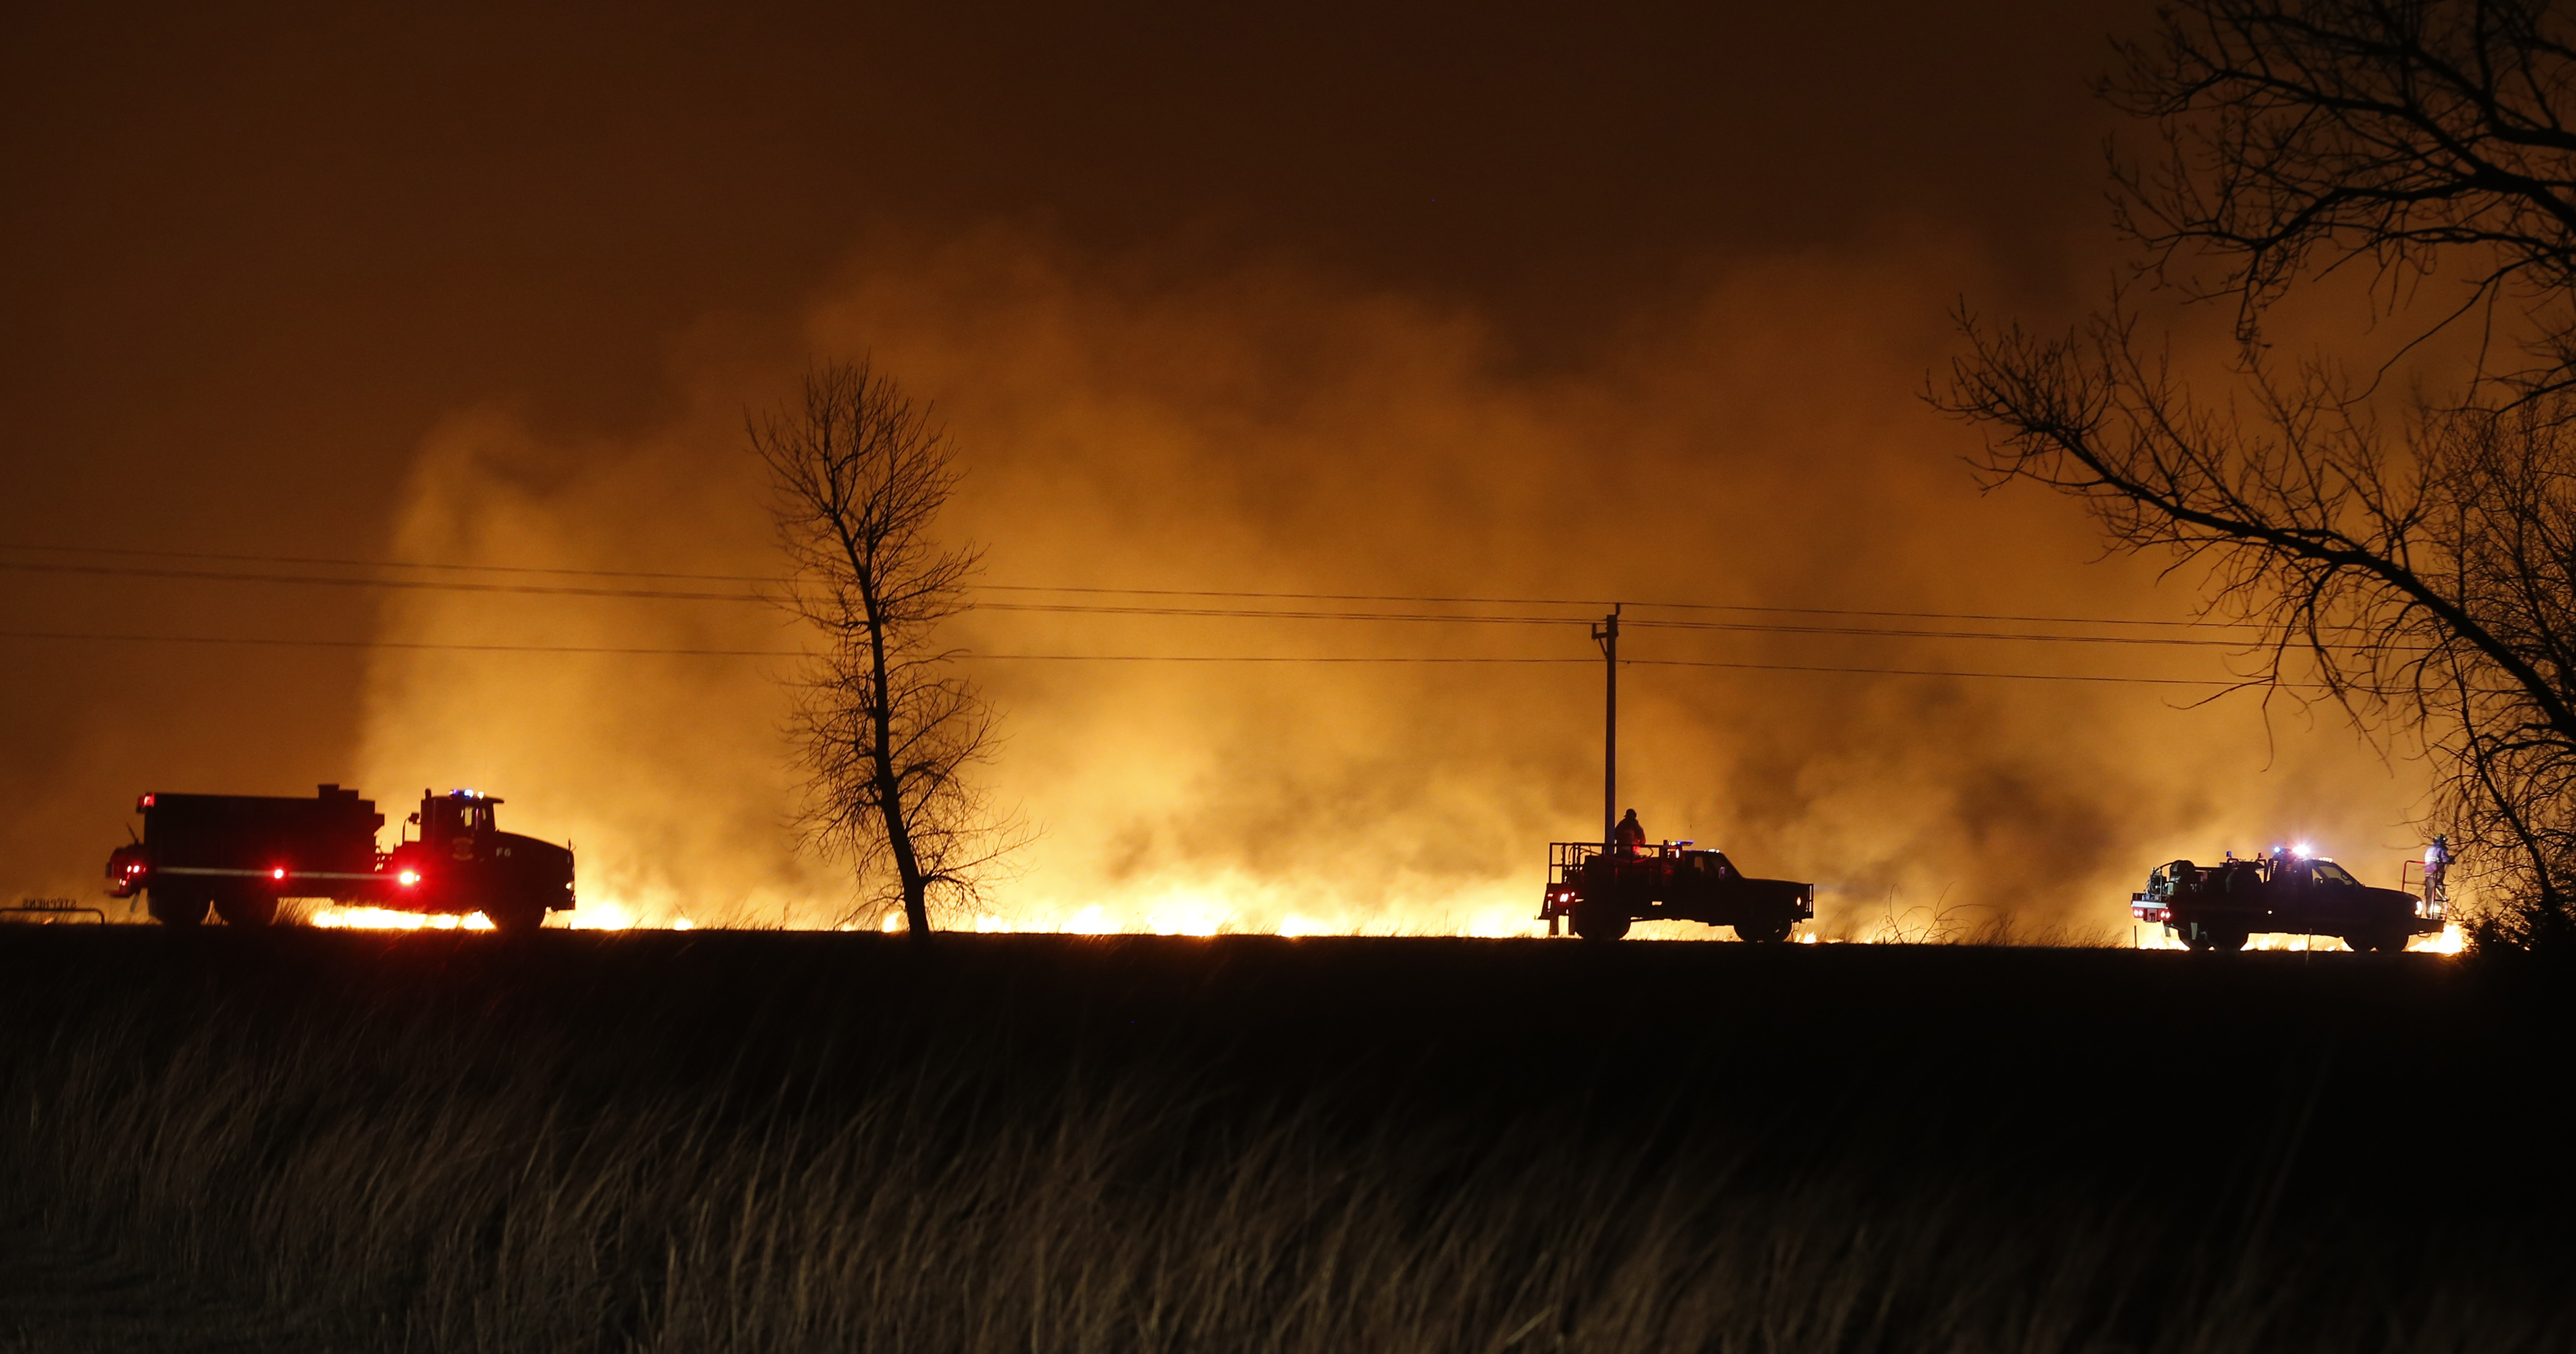 Firefighters from across Kansas and Oklahoma battle a wildfire near Protection, Kan., on March 6, 2017. (Bo Rader/The Wichita Eagle via AP)